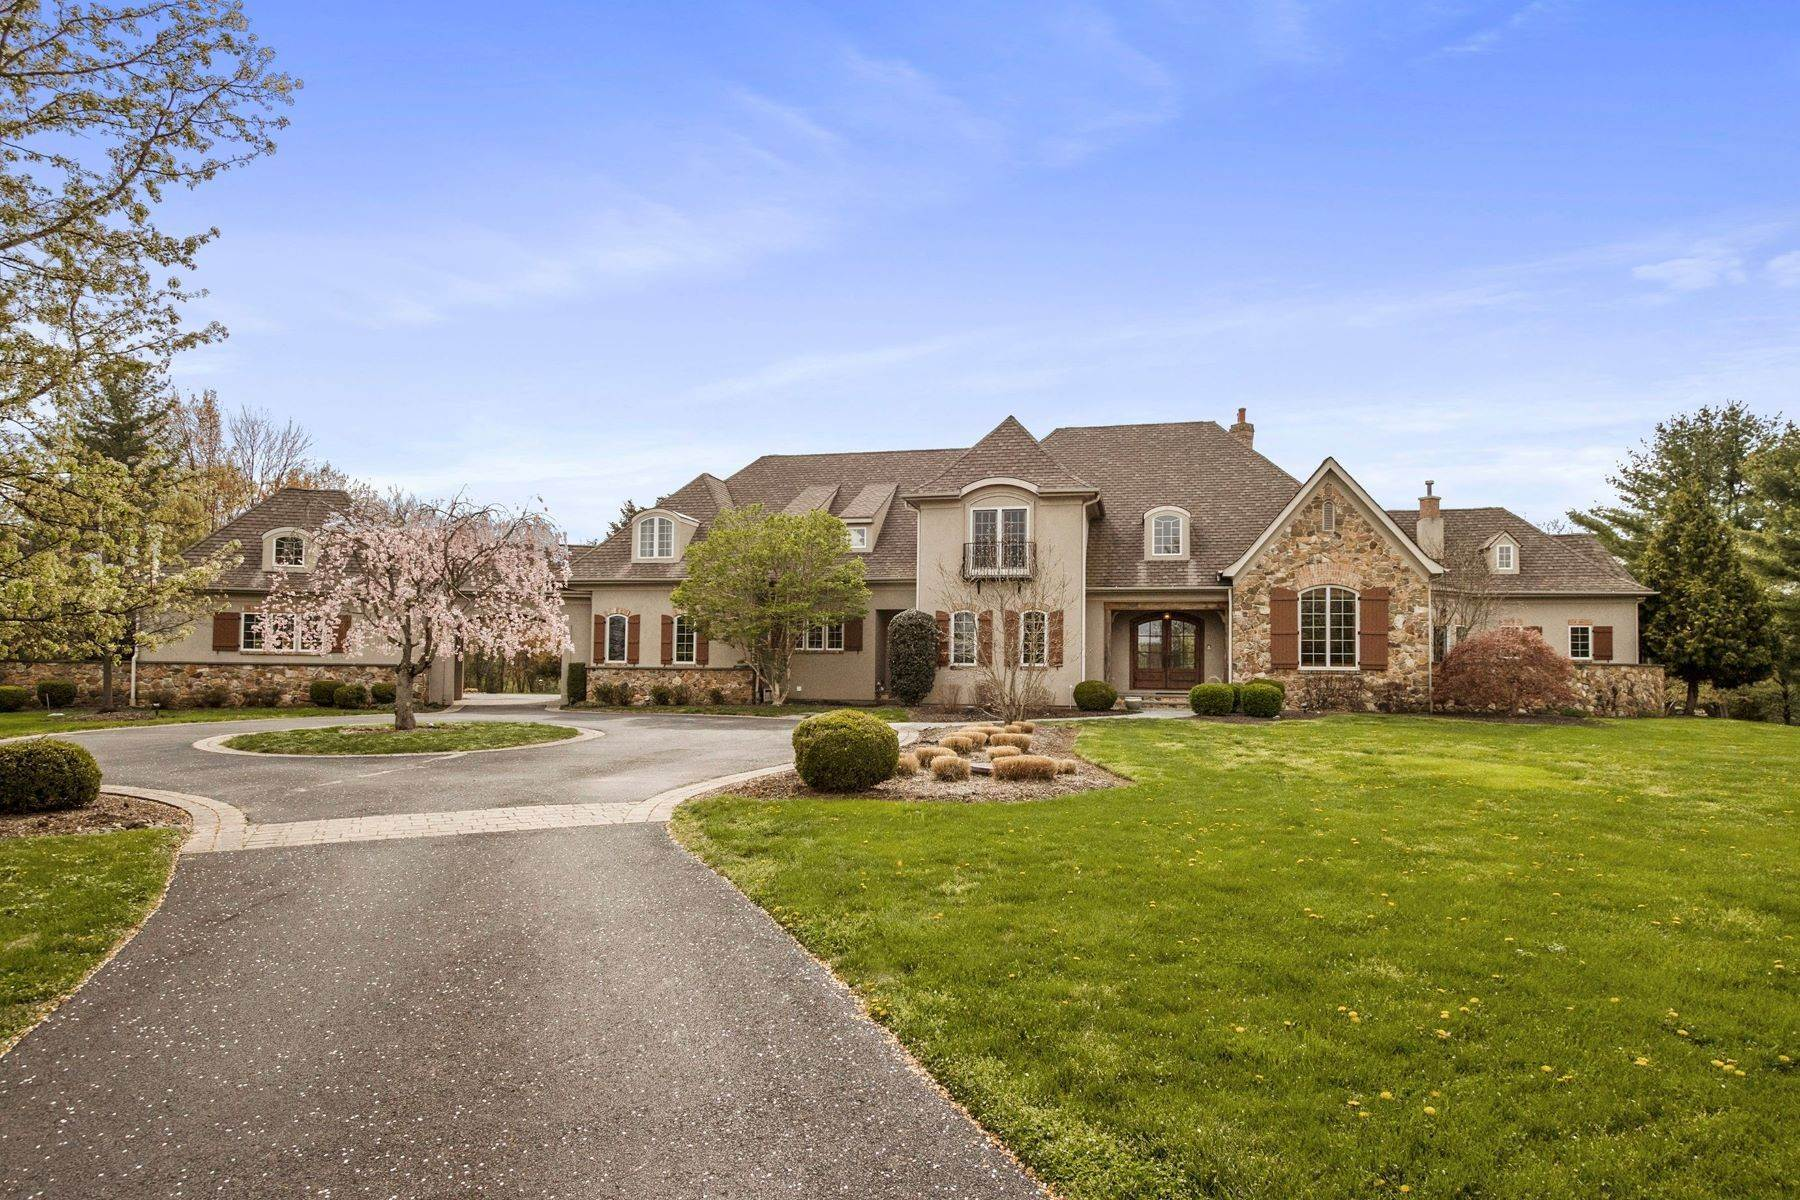 Single Family Homes for Sale at Highland Manor 1023 Highland Road Newtown, Pennsylvania 18940 United States